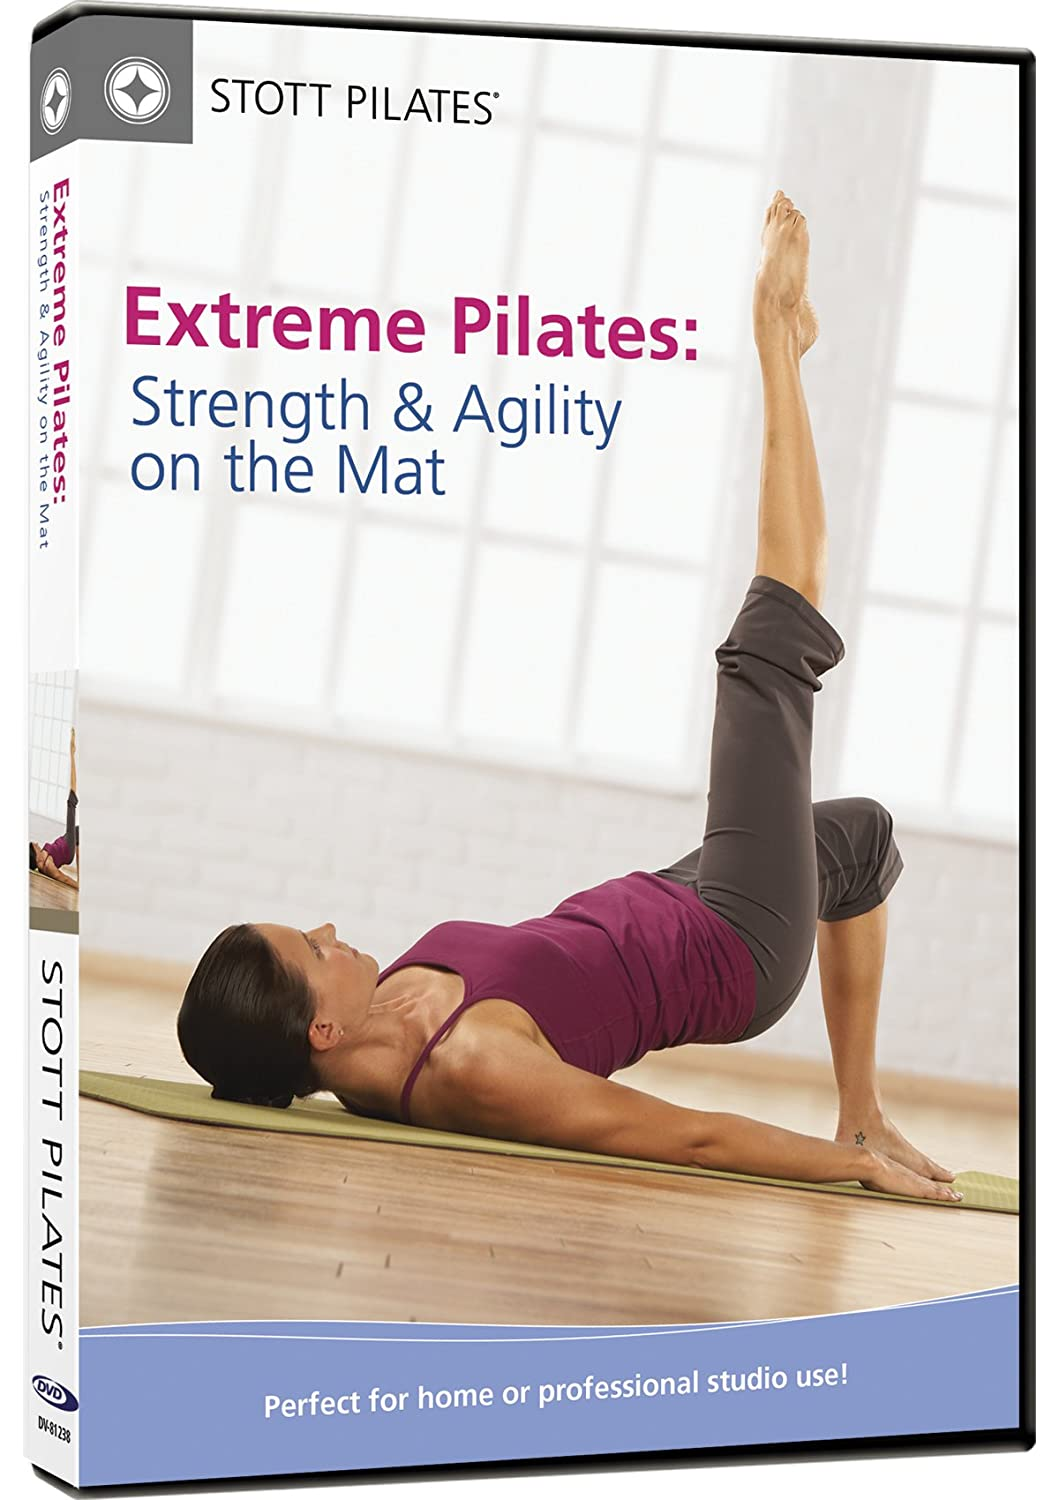 STOTT PILATES Extreme Pilates - Strength and Agility on the Mat